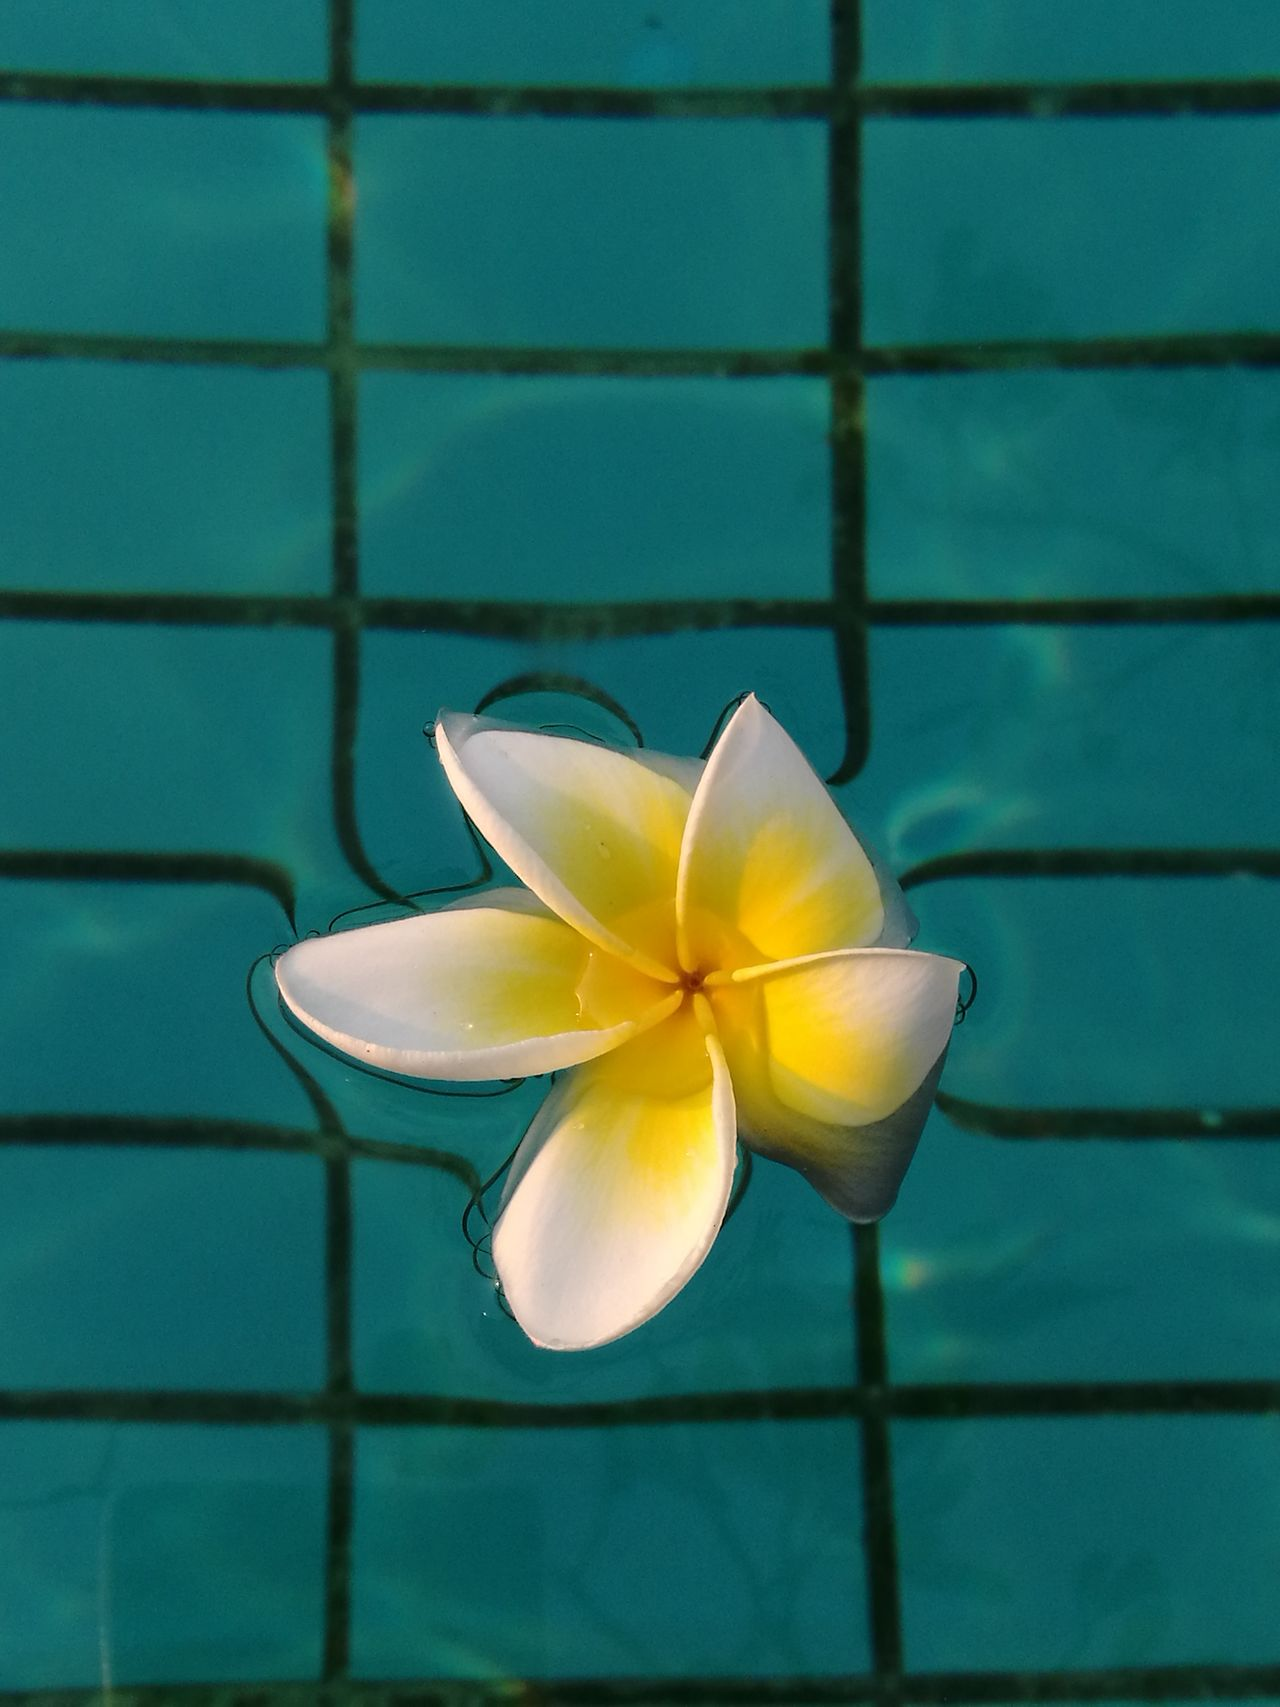 No People Close-up Frangipani Outdoors Day Blue Pool Clear Relaxing Swimming Pool Water Flower flower in the pool White And Green White&green The Week Of Eyeem Floting EyeEmNewHere